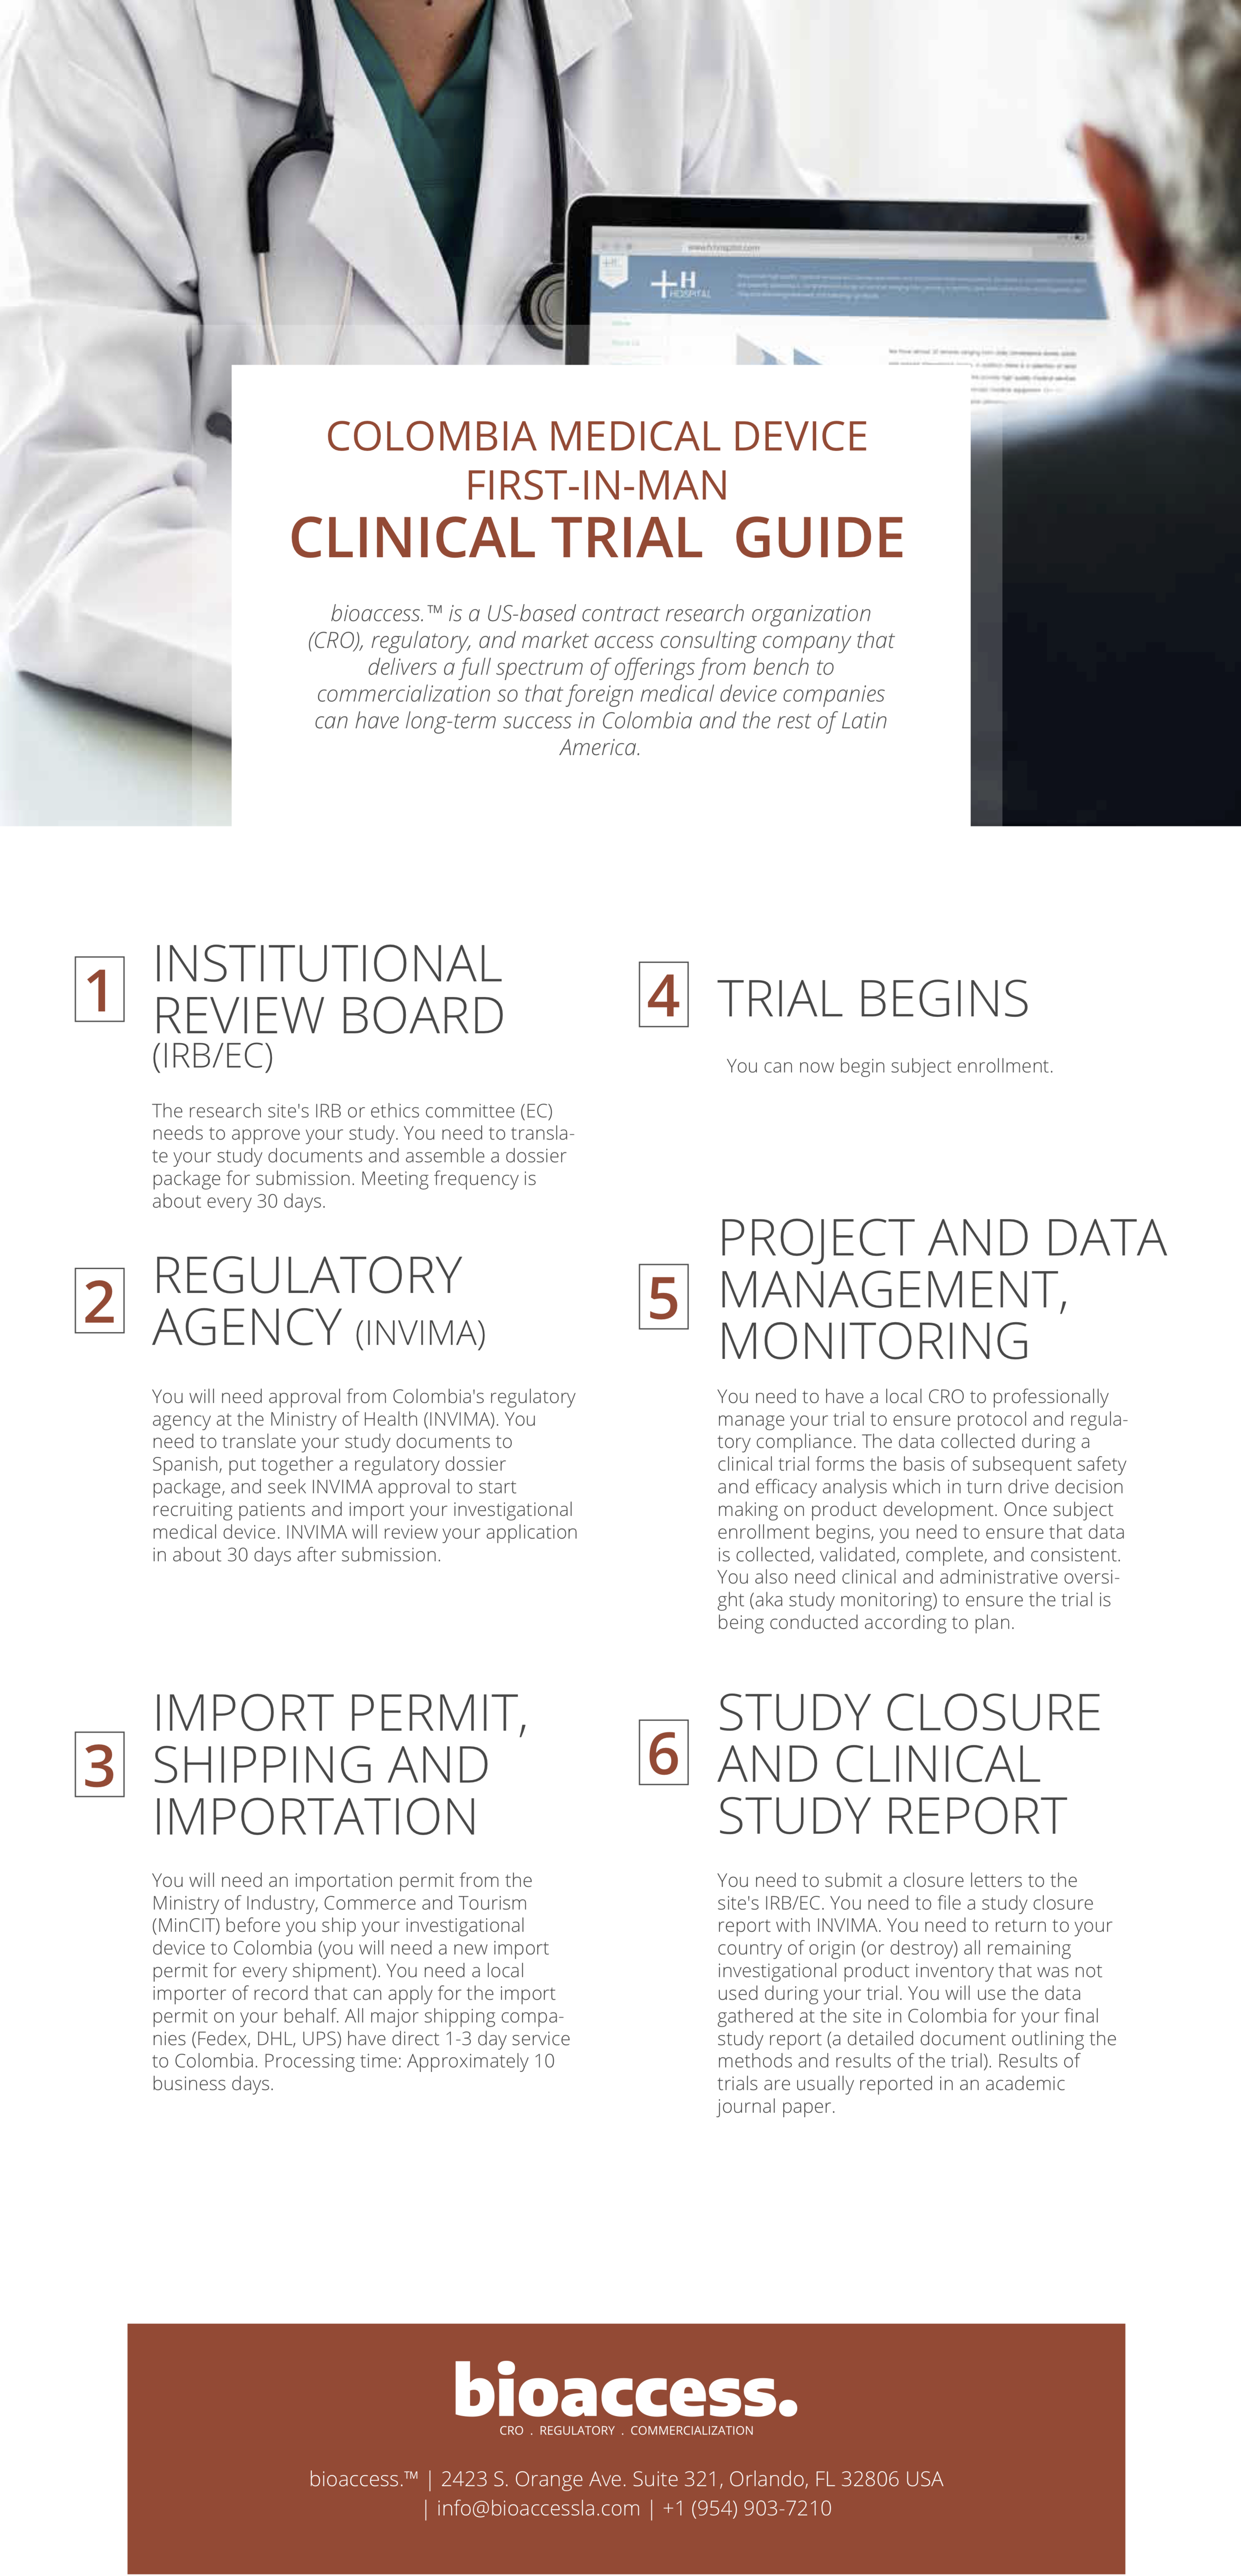 Download our first-in-man clinical trial guide for Colombia.